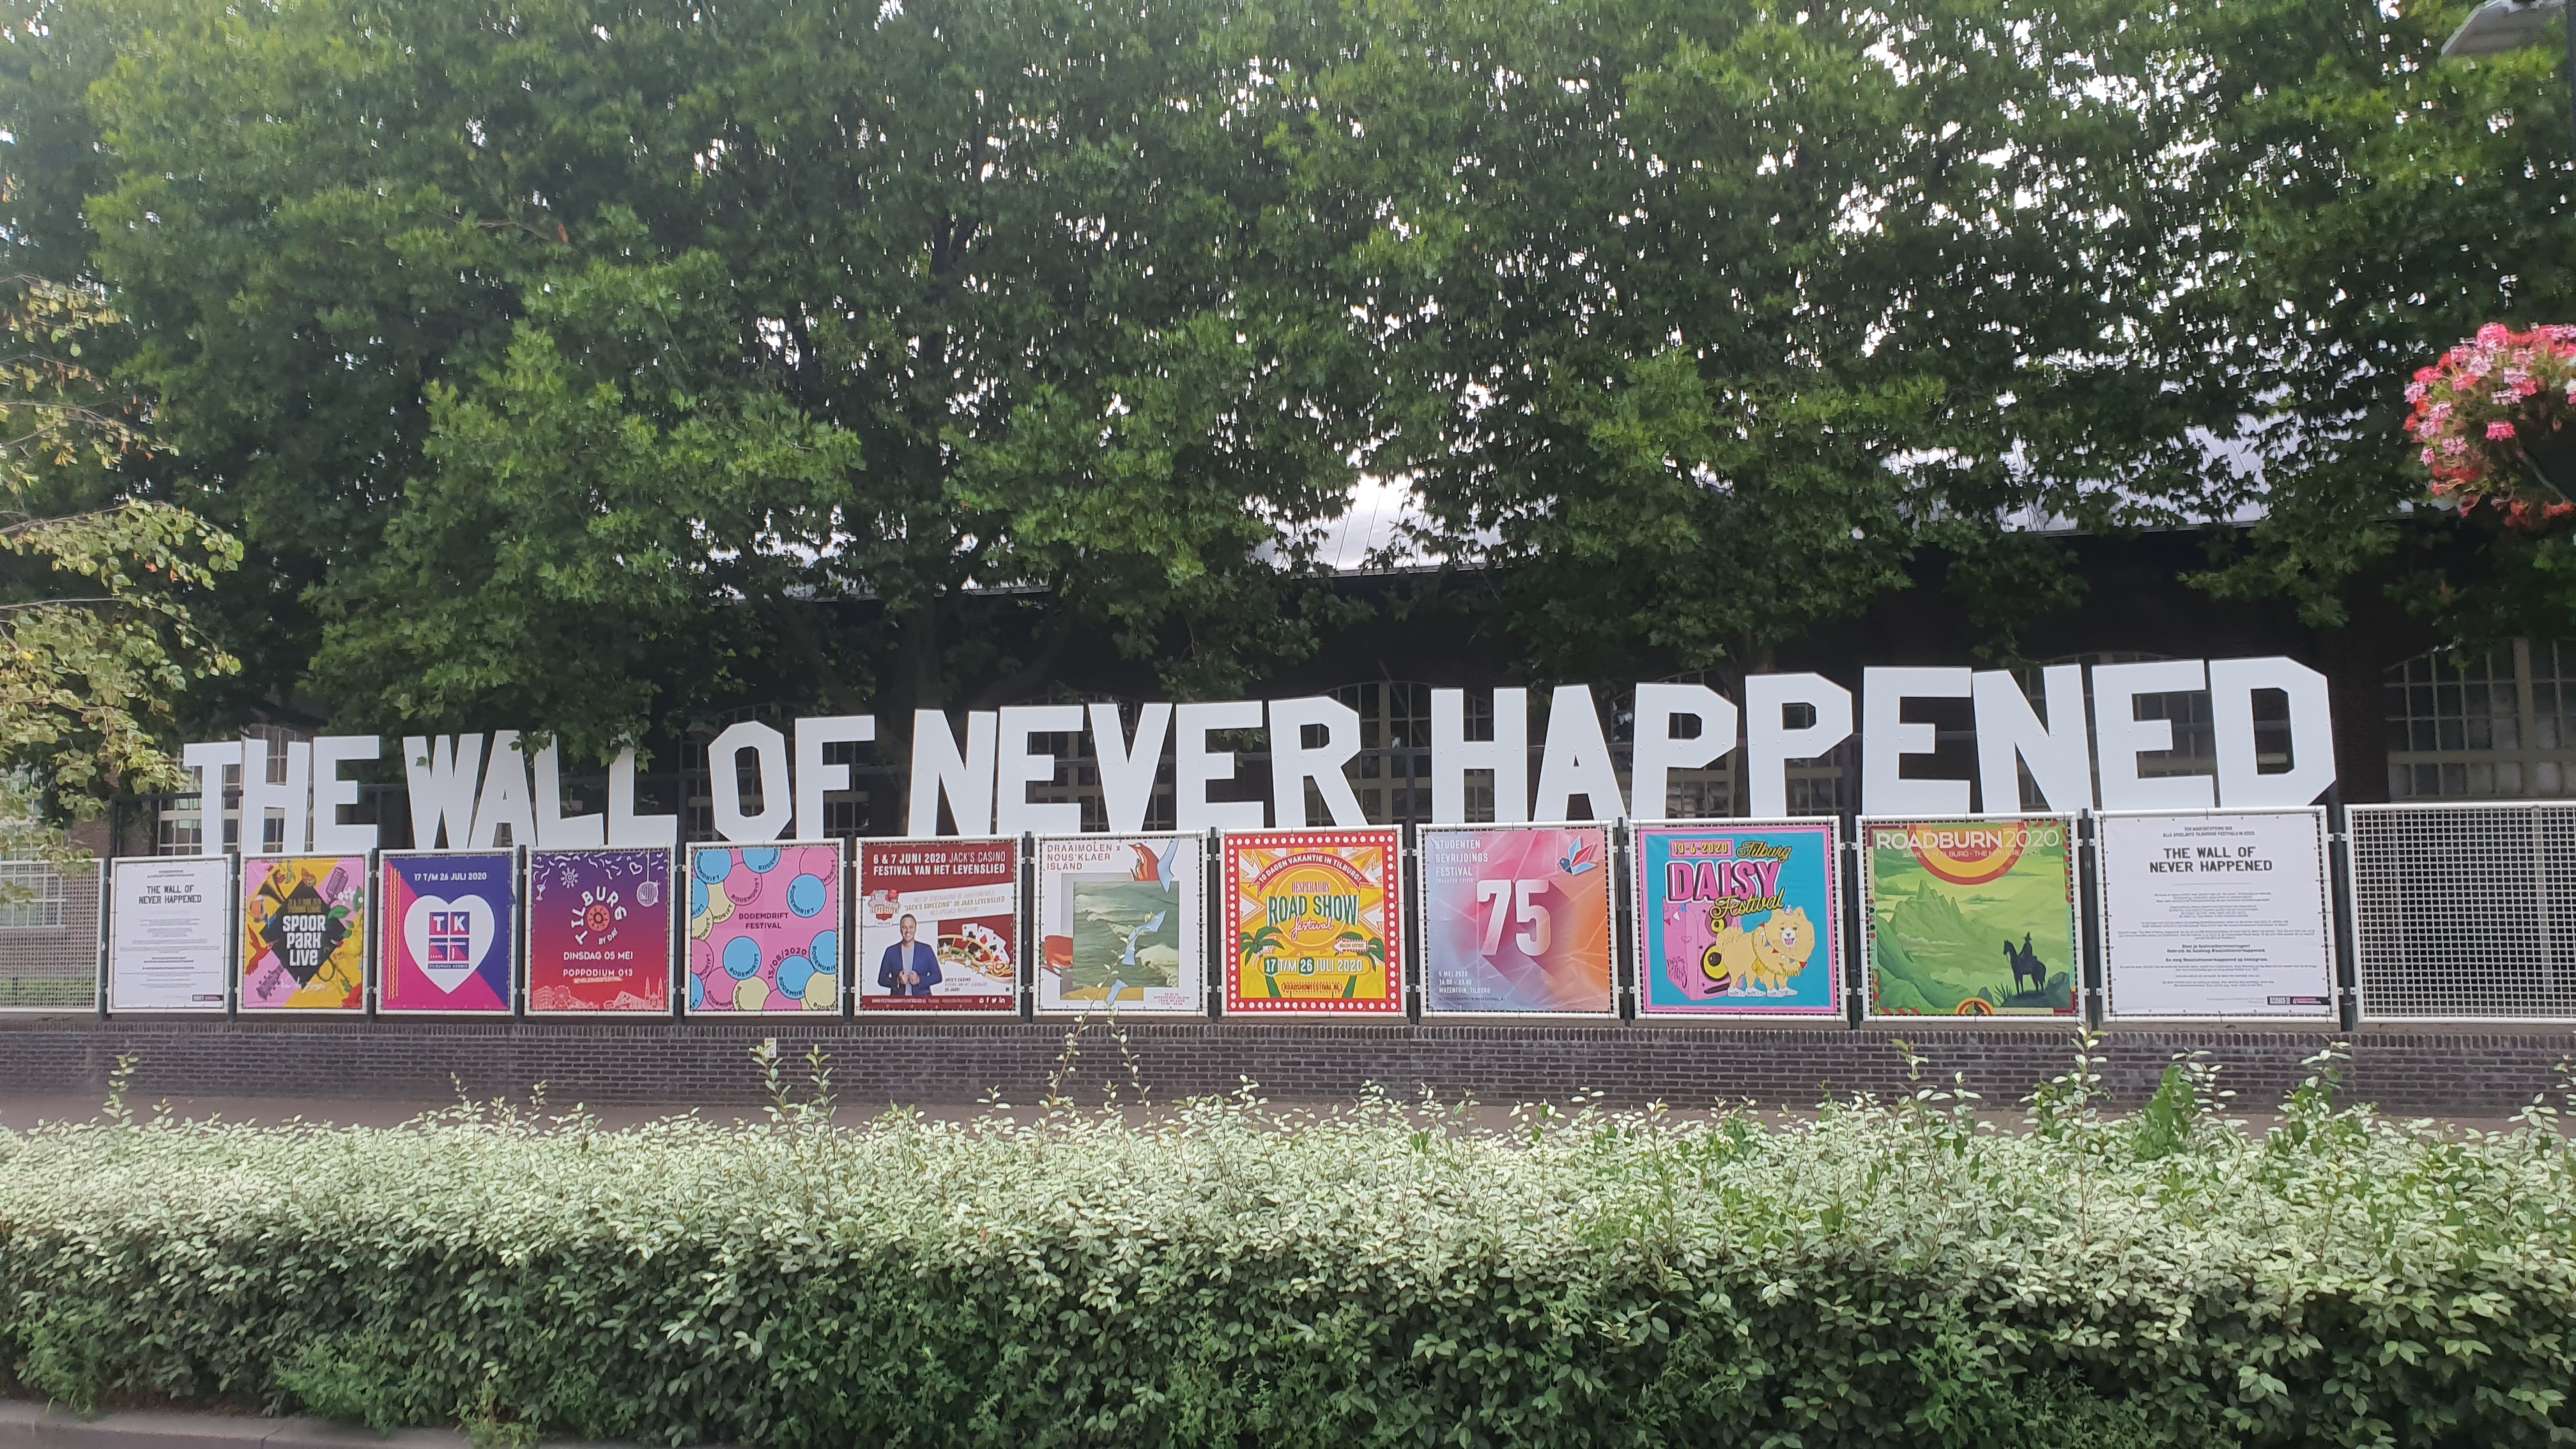 The Wall of Never Happened